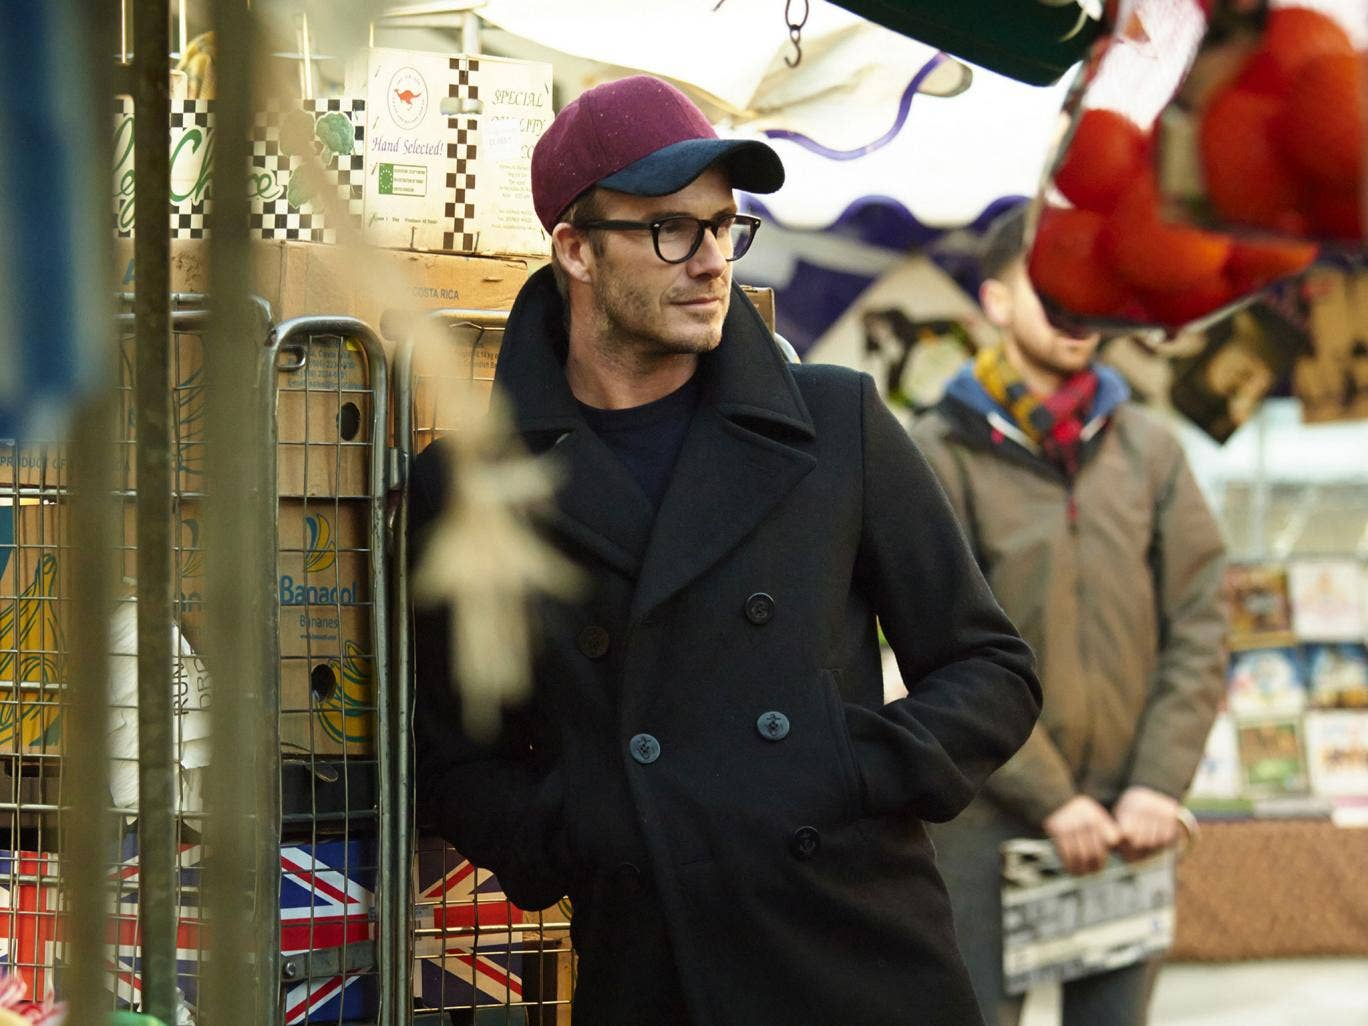 Beckham makes an appearance at the Only Fools market